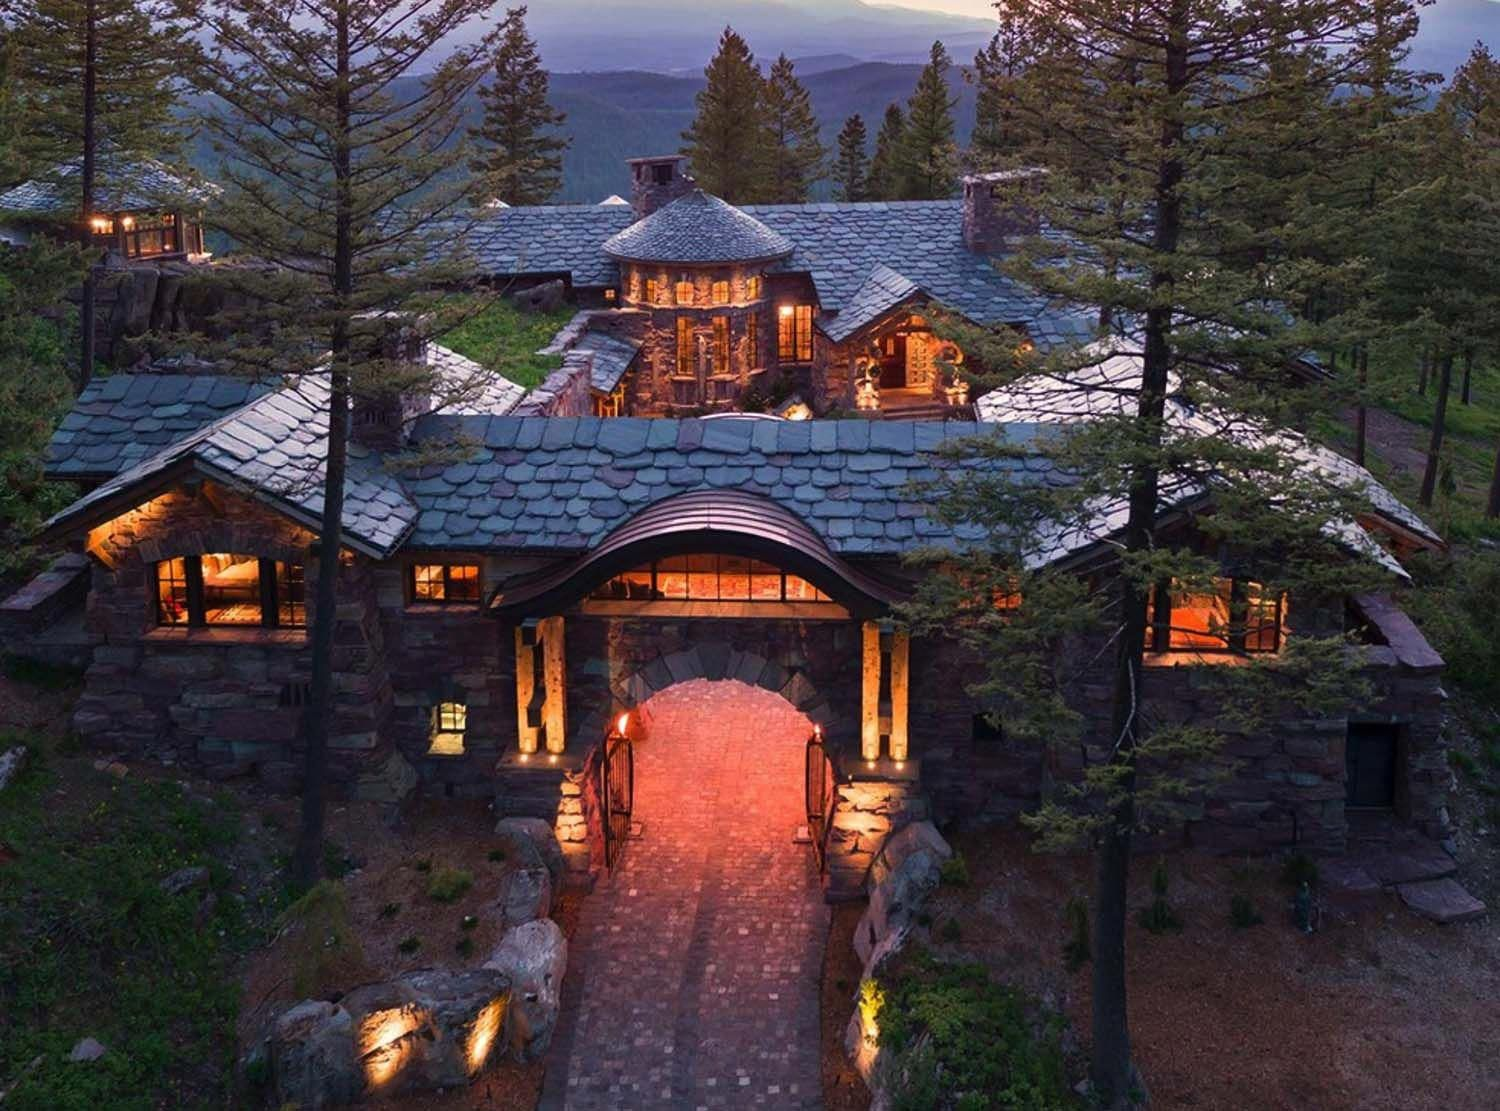 A dreamy Montana mountain retreat: Great Northern Lodge. ∘⚜∘Rustic Log Homes∘⚜∘ - Pinterest: Crackpot Baby #Log.Cabin #mountainhomes